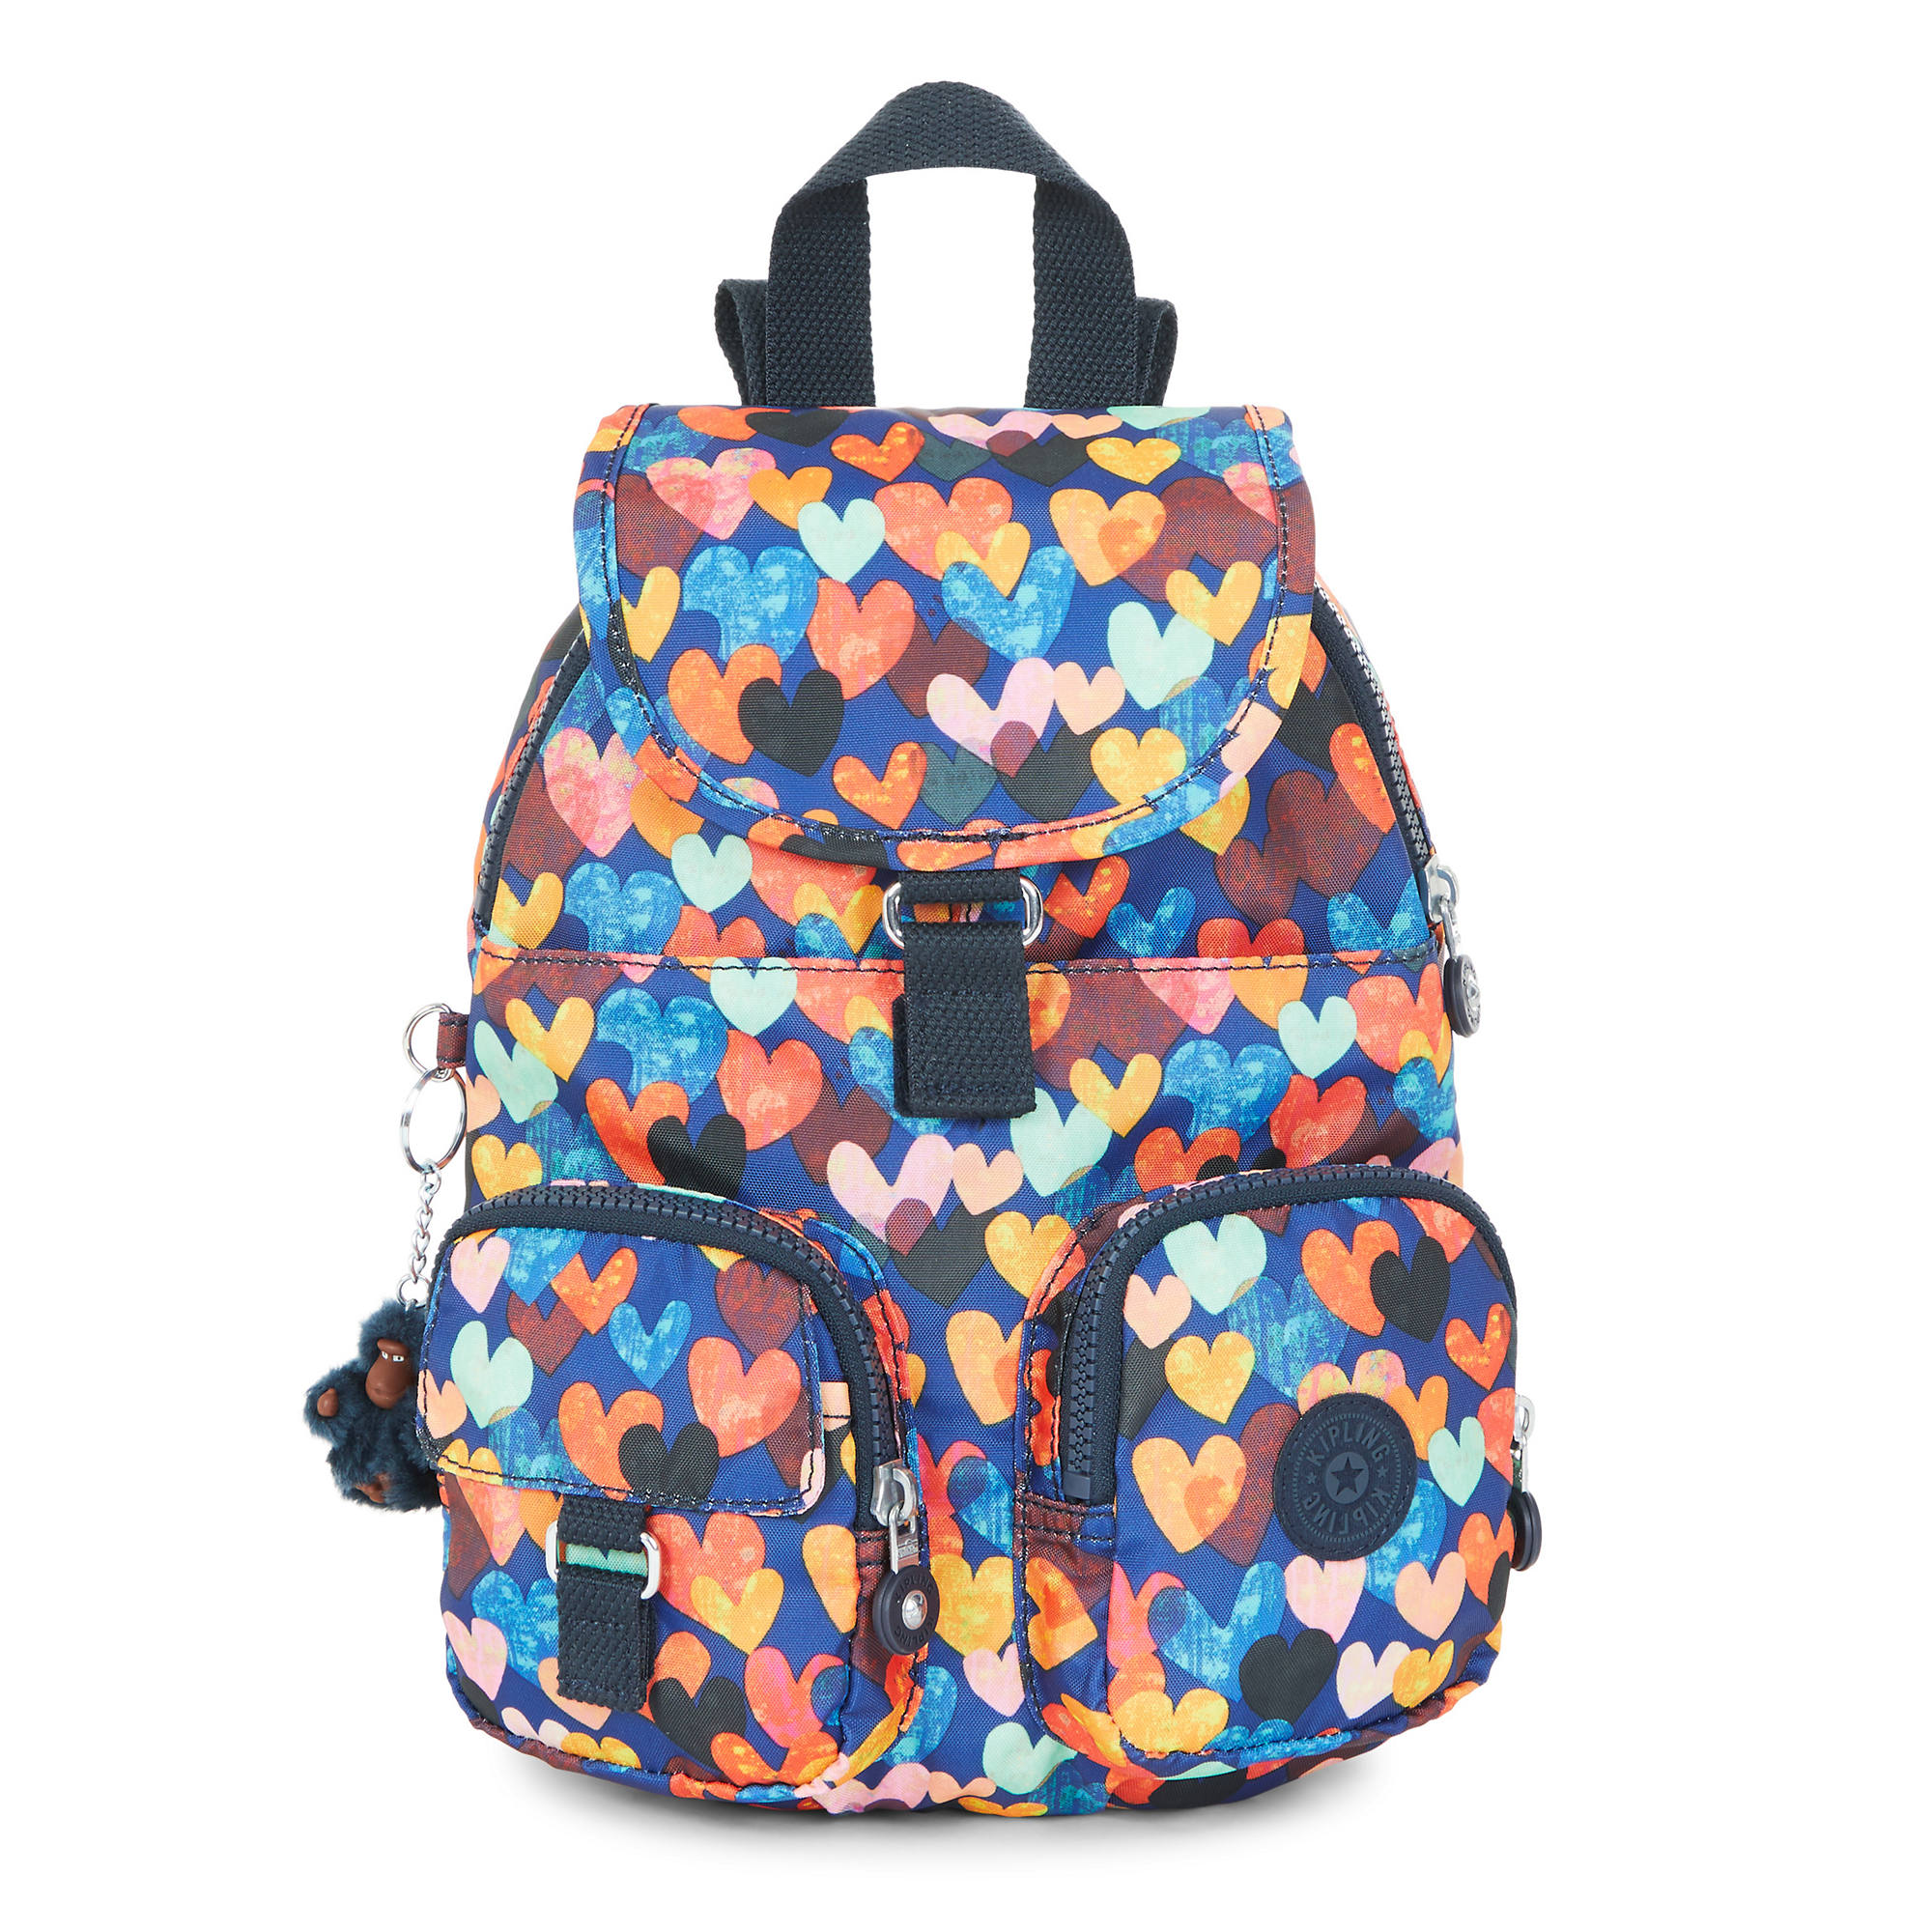 5a55534b15 Lovebug Small Printed Backpack,Happy Dazzle,large